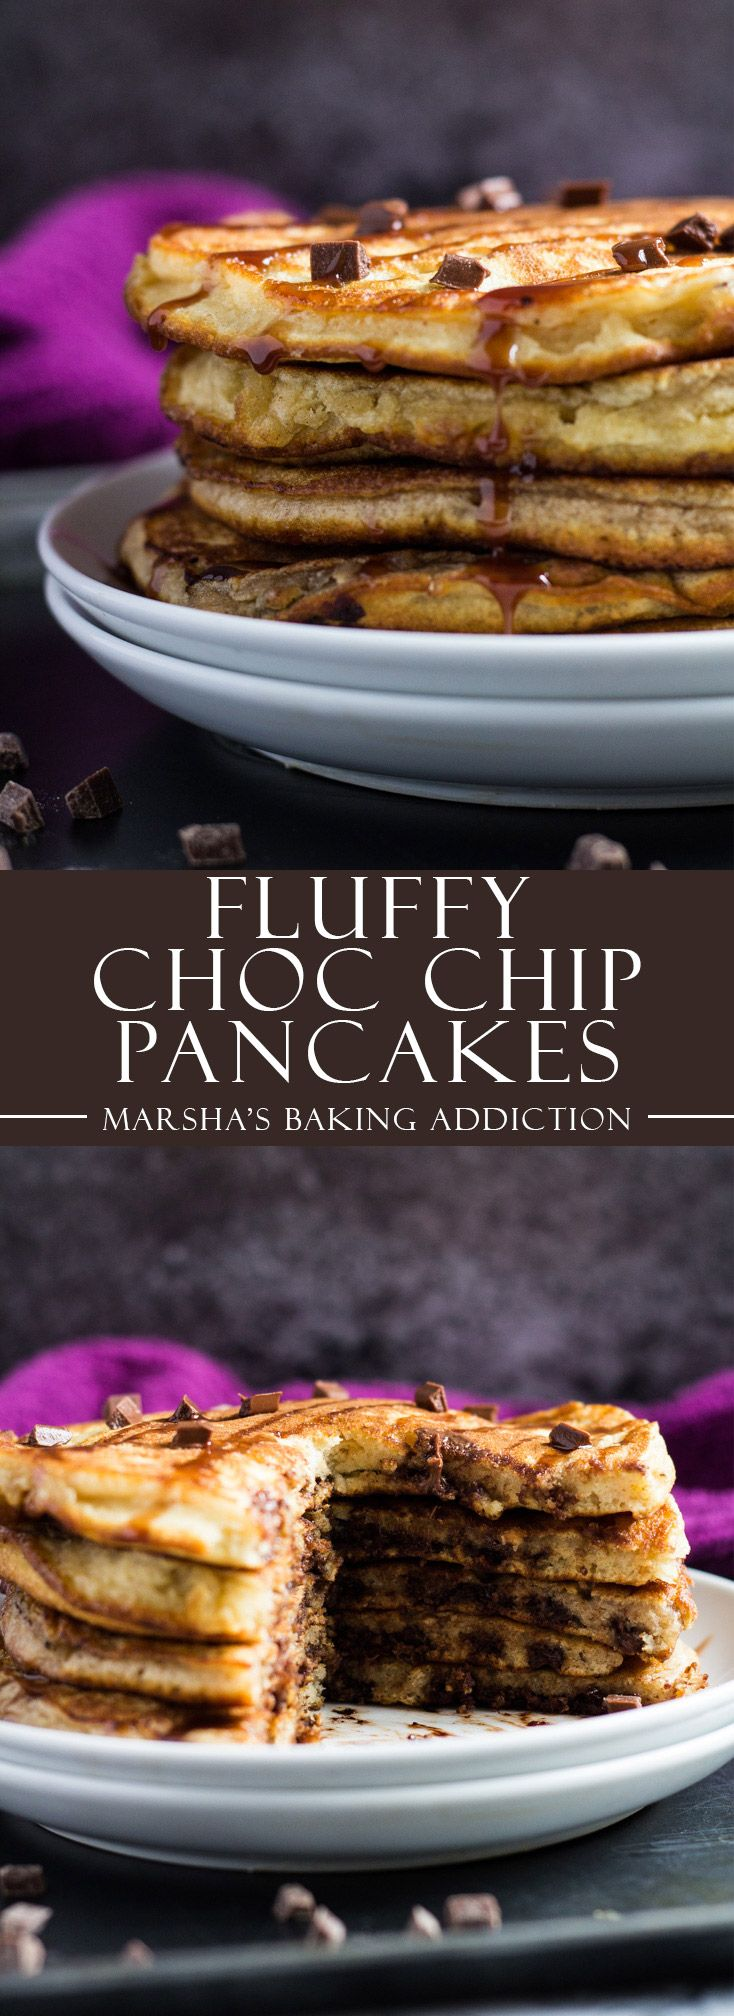 Fluffy Chocolate Chip Pancakes | marshasbakingaddiction.com @marshasbakeblog